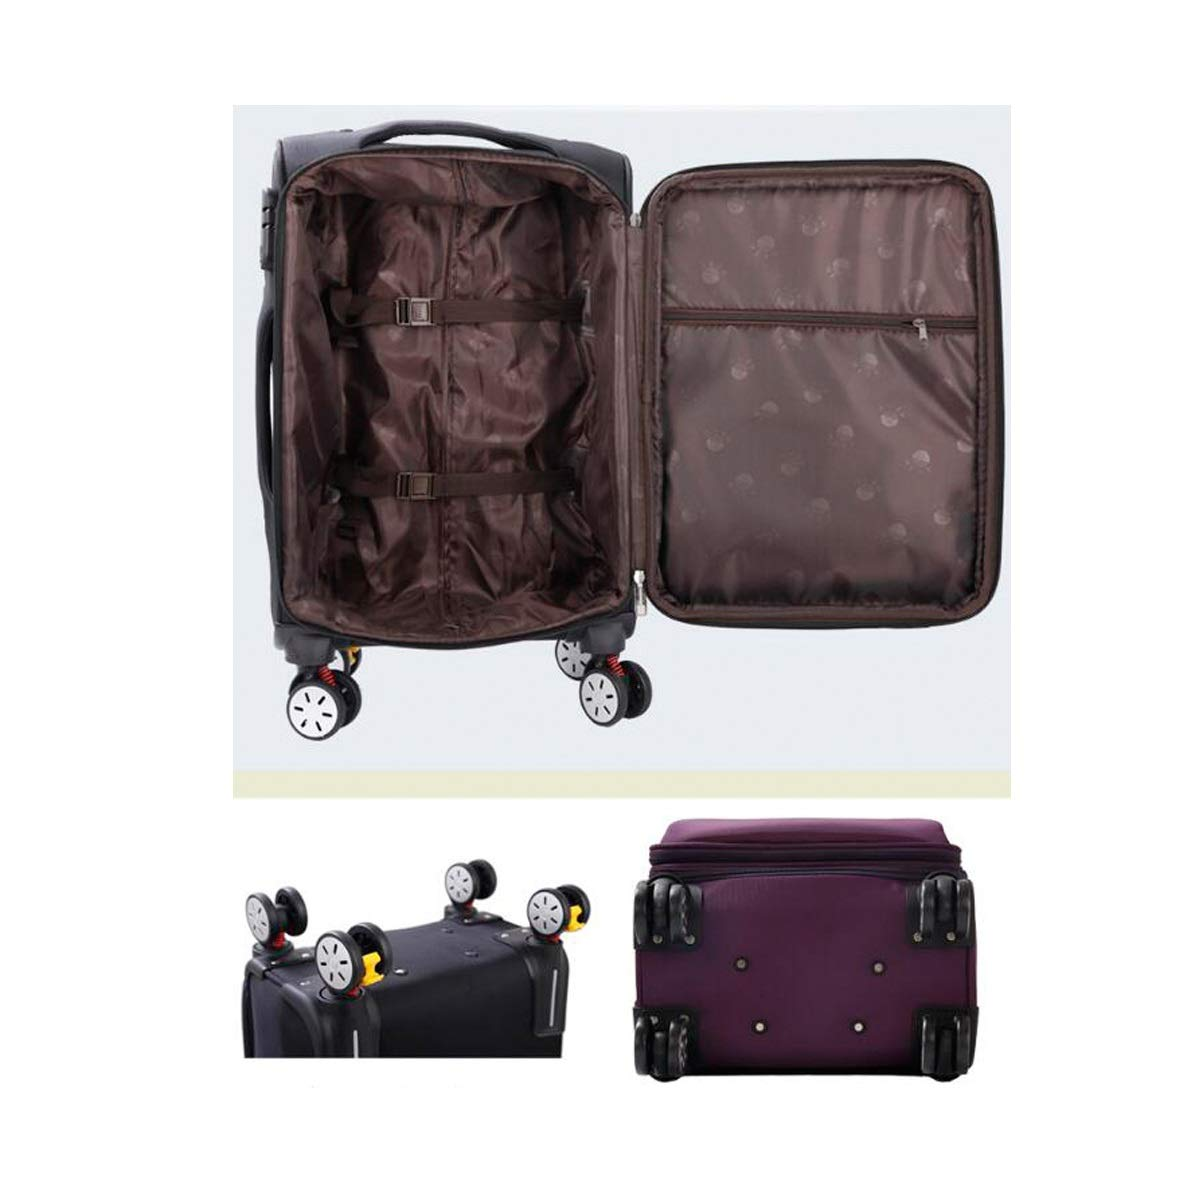 Simple Trolley Case Best Gift Black The Latest Style Travel Organizer Color : Blue, Size : 22 Huijunwenti Soft Rotating Luggage 20//22//24 Carrying Case